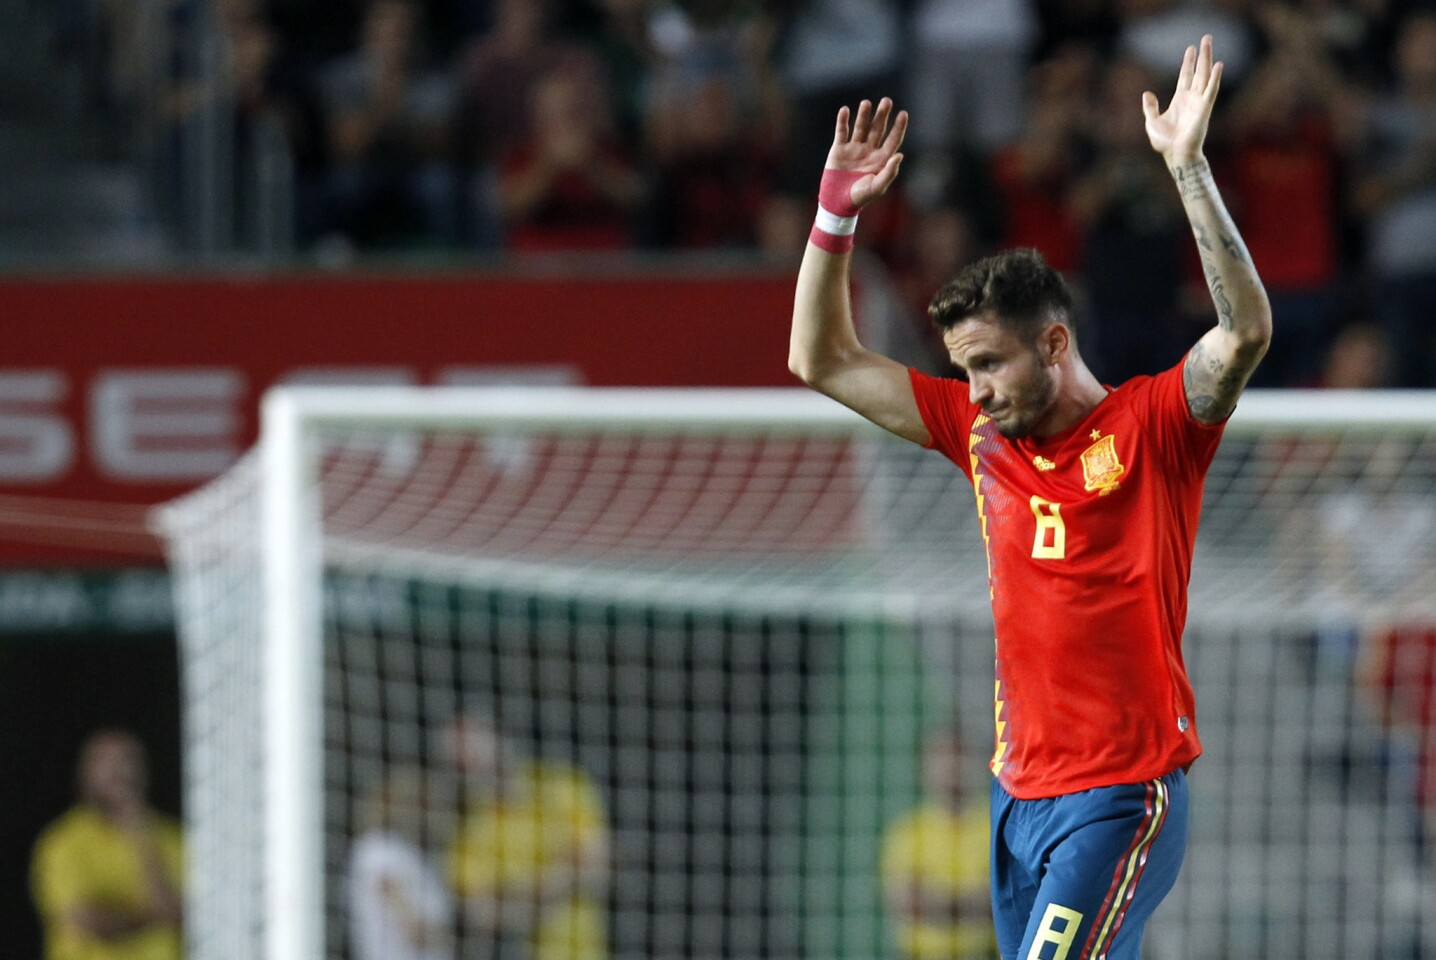 Spain's Saul Niguez greets supporters and leaves the field during the UEFA Nations League soccer match between Spain and Croatia at the Manuel Martinez Valero stadium in Elche, Spain, Tuesday Sept. 11, 2018. (AP Photo/Alberto Saiz)